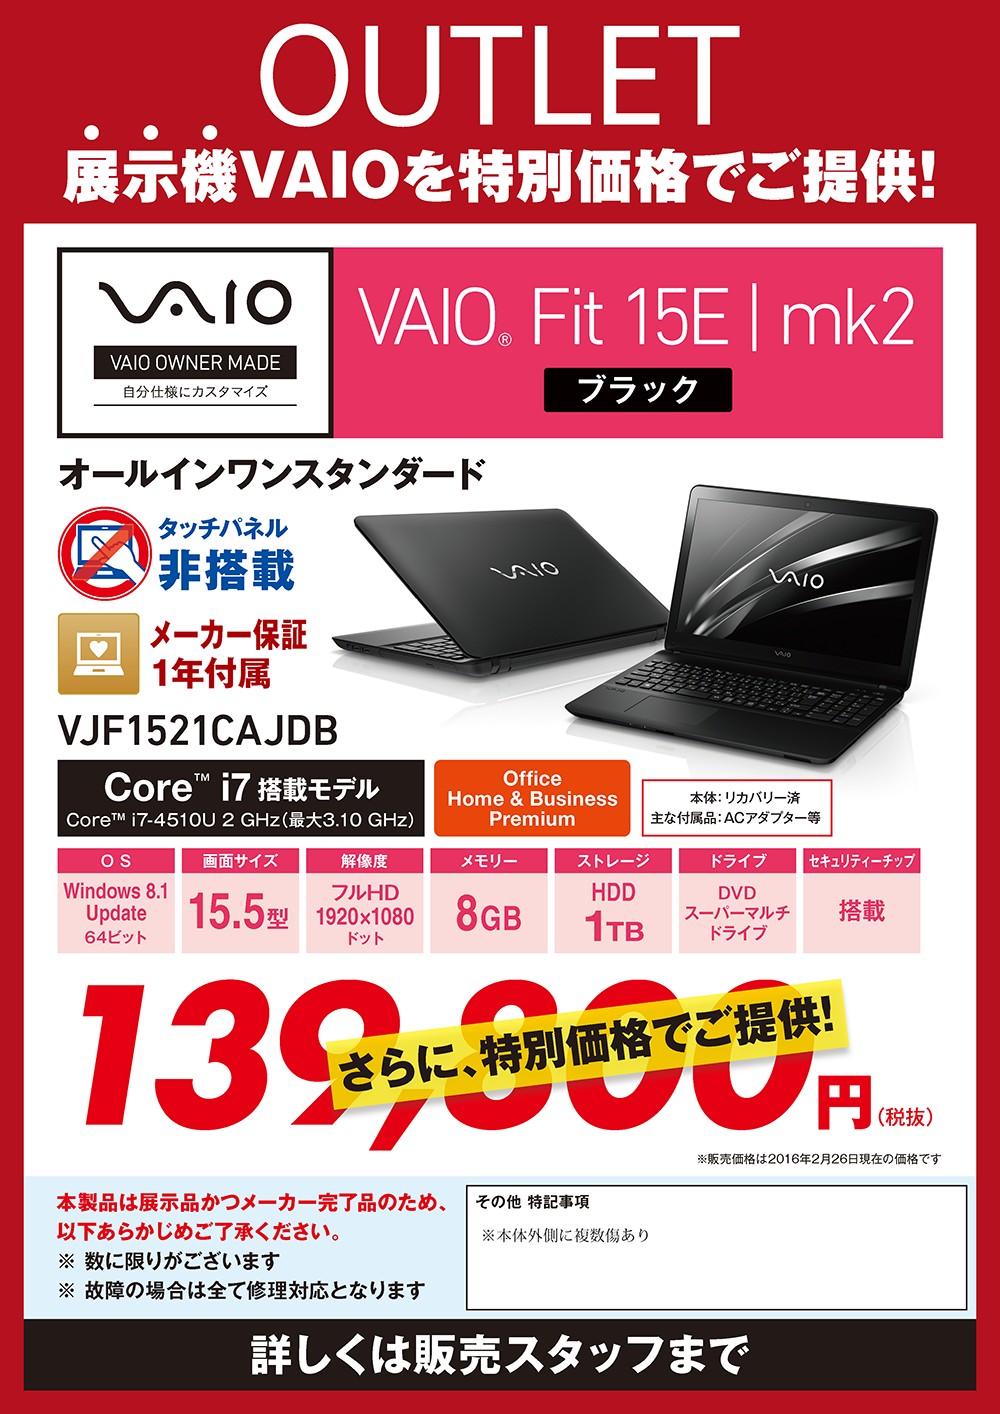 VAIO_outlet-price_ページ_02